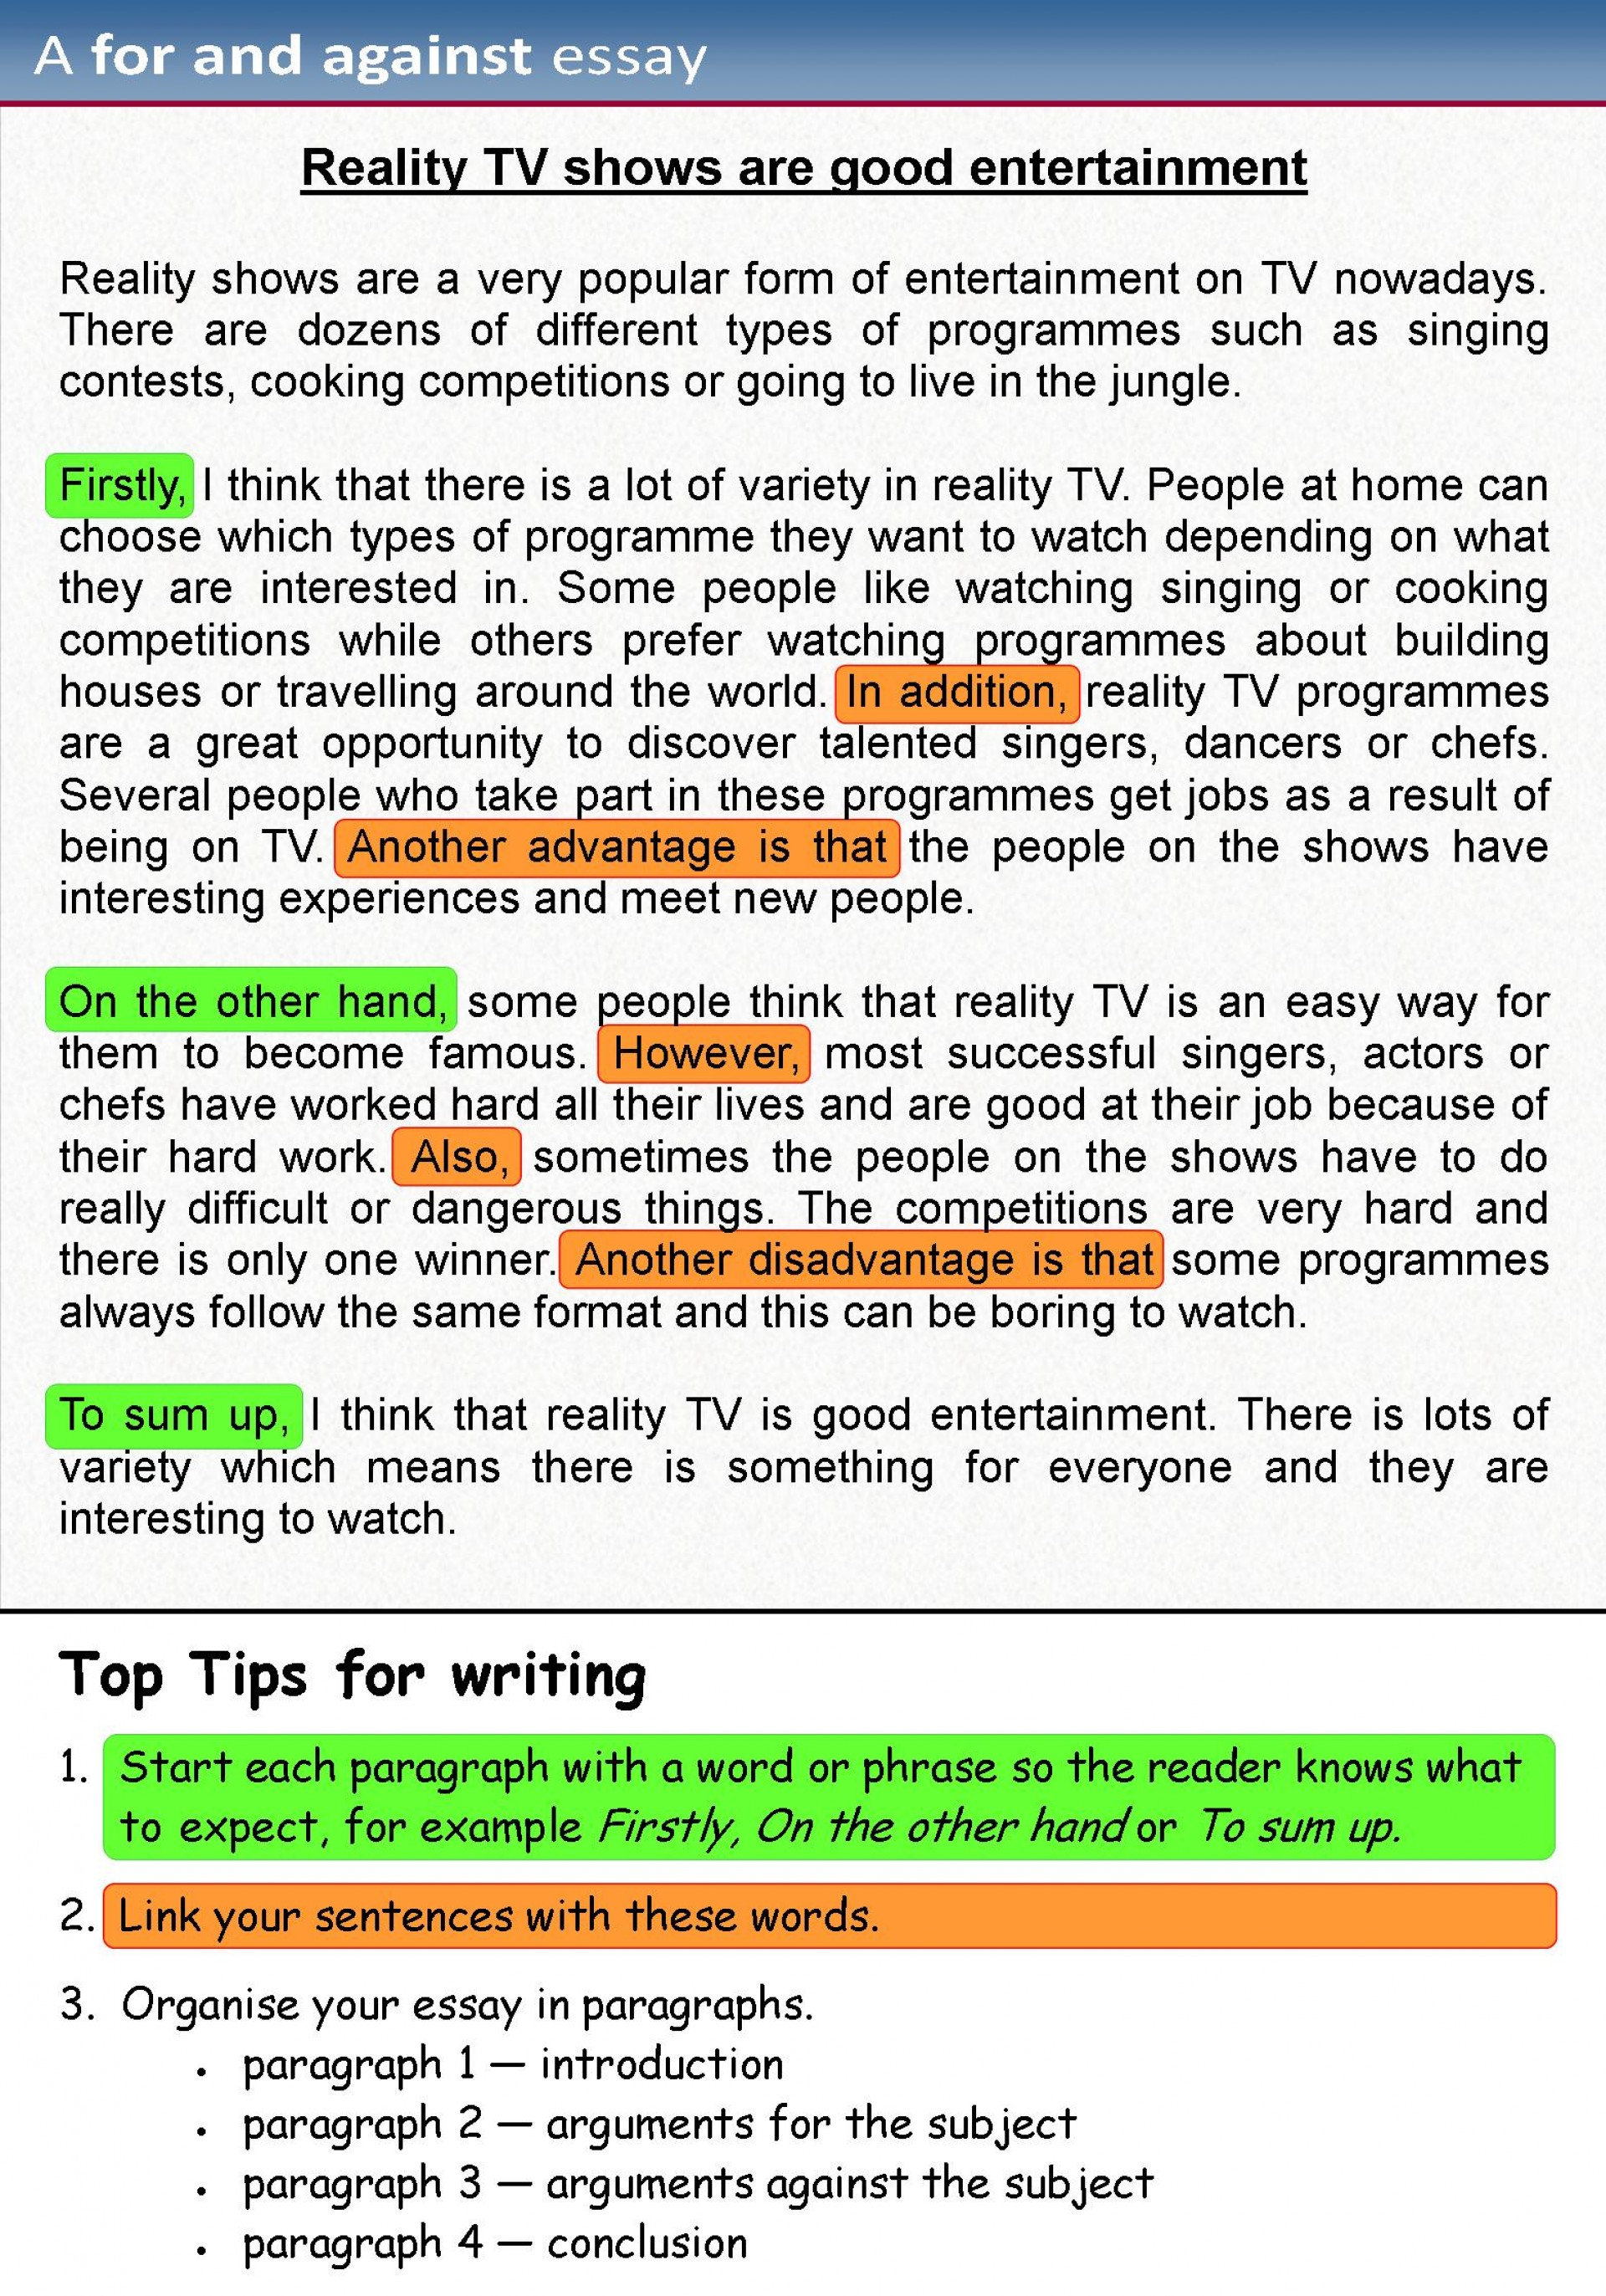 005 Day Without Tv Essay Example For Against 1 Outstanding A 1920